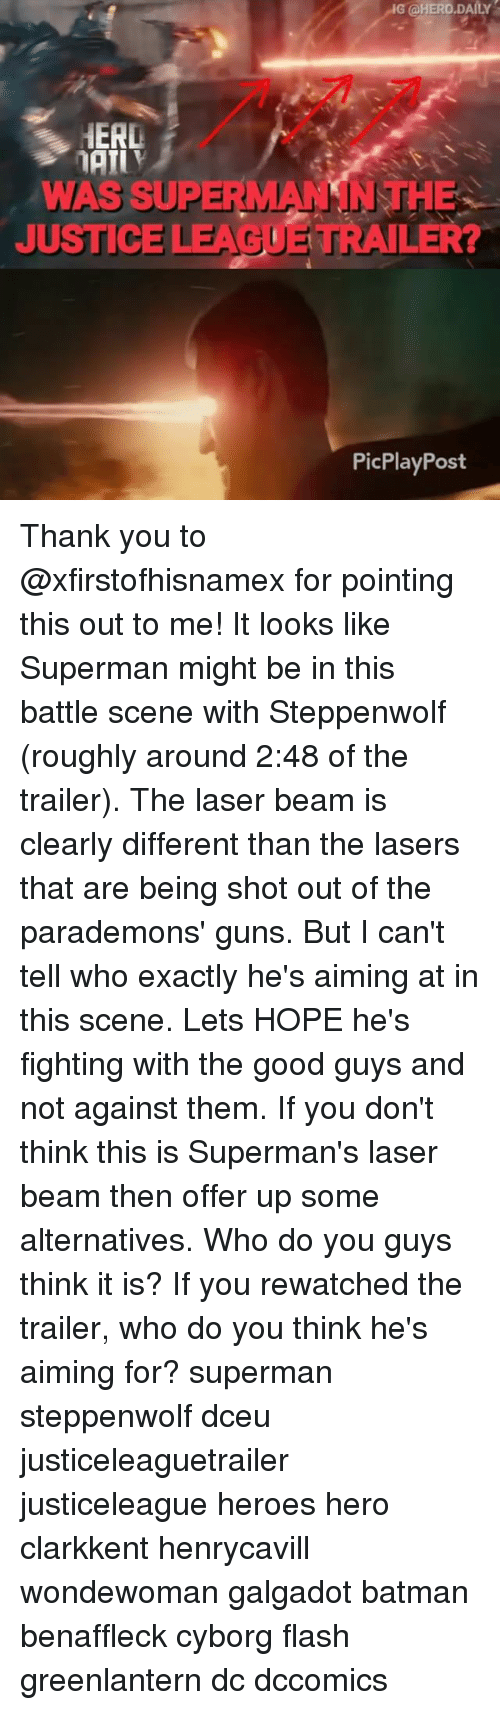 the good guys: G @HERO.DAILY  HERL  WAS SUPERMANSNTHE  JUSTICE LEAGUE TRAILER?  PicPlayPost Thank you to @xfirstofhisnamex for pointing this out to me! It looks like Superman might be in this battle scene with Steppenwolf (roughly around 2:48 of the trailer). The laser beam is clearly different than the lasers that are being shot out of the parademons' guns. But I can't tell who exactly he's aiming at in this scene. Lets HOPE he's fighting with the good guys and not against them. If you don't think this is Superman's laser beam then offer up some alternatives. Who do you guys think it is? If you rewatched the trailer, who do you think he's aiming for? superman steppenwolf dceu justiceleaguetrailer justiceleague heroes hero clarkkent henrycavill wondewoman galgadot batman benaffleck cyborg flash greenlantern dc dccomics